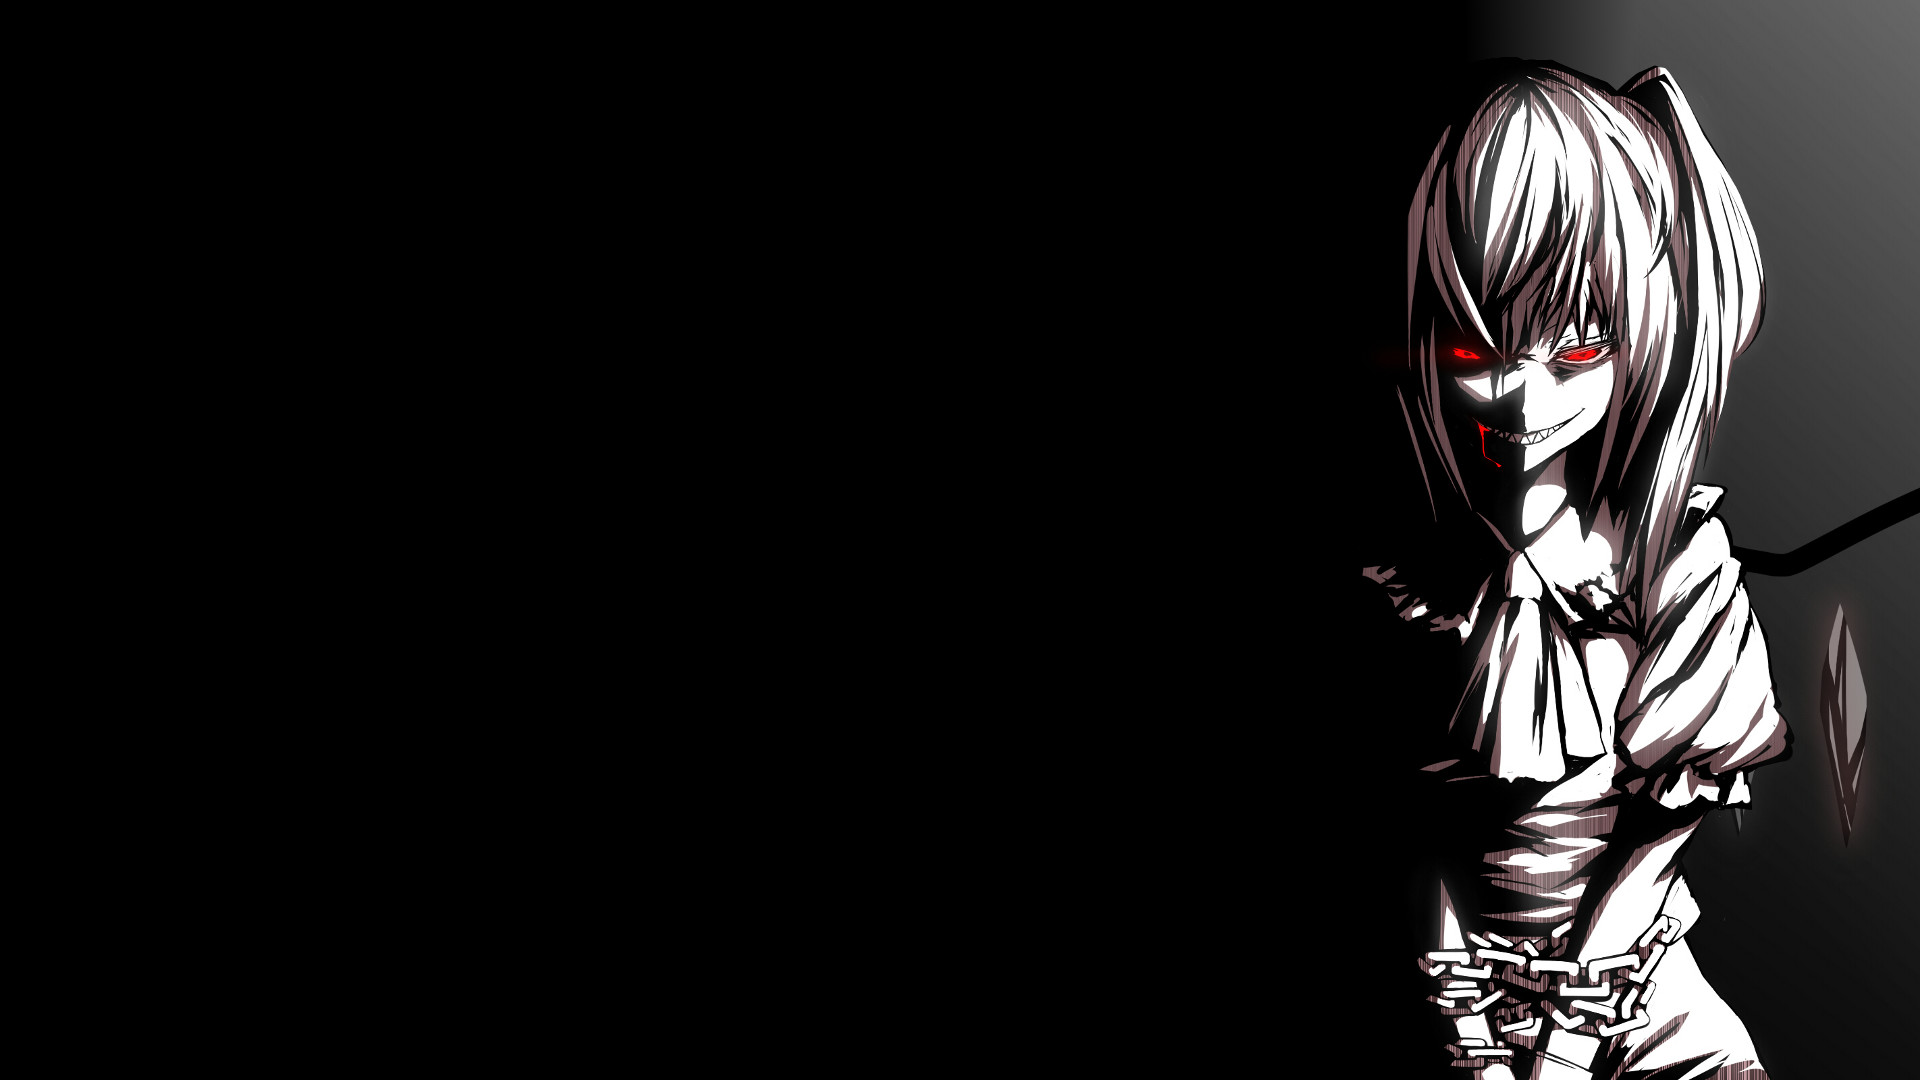 Anime Wallpaper 1080p 76 pictures 1920x1080